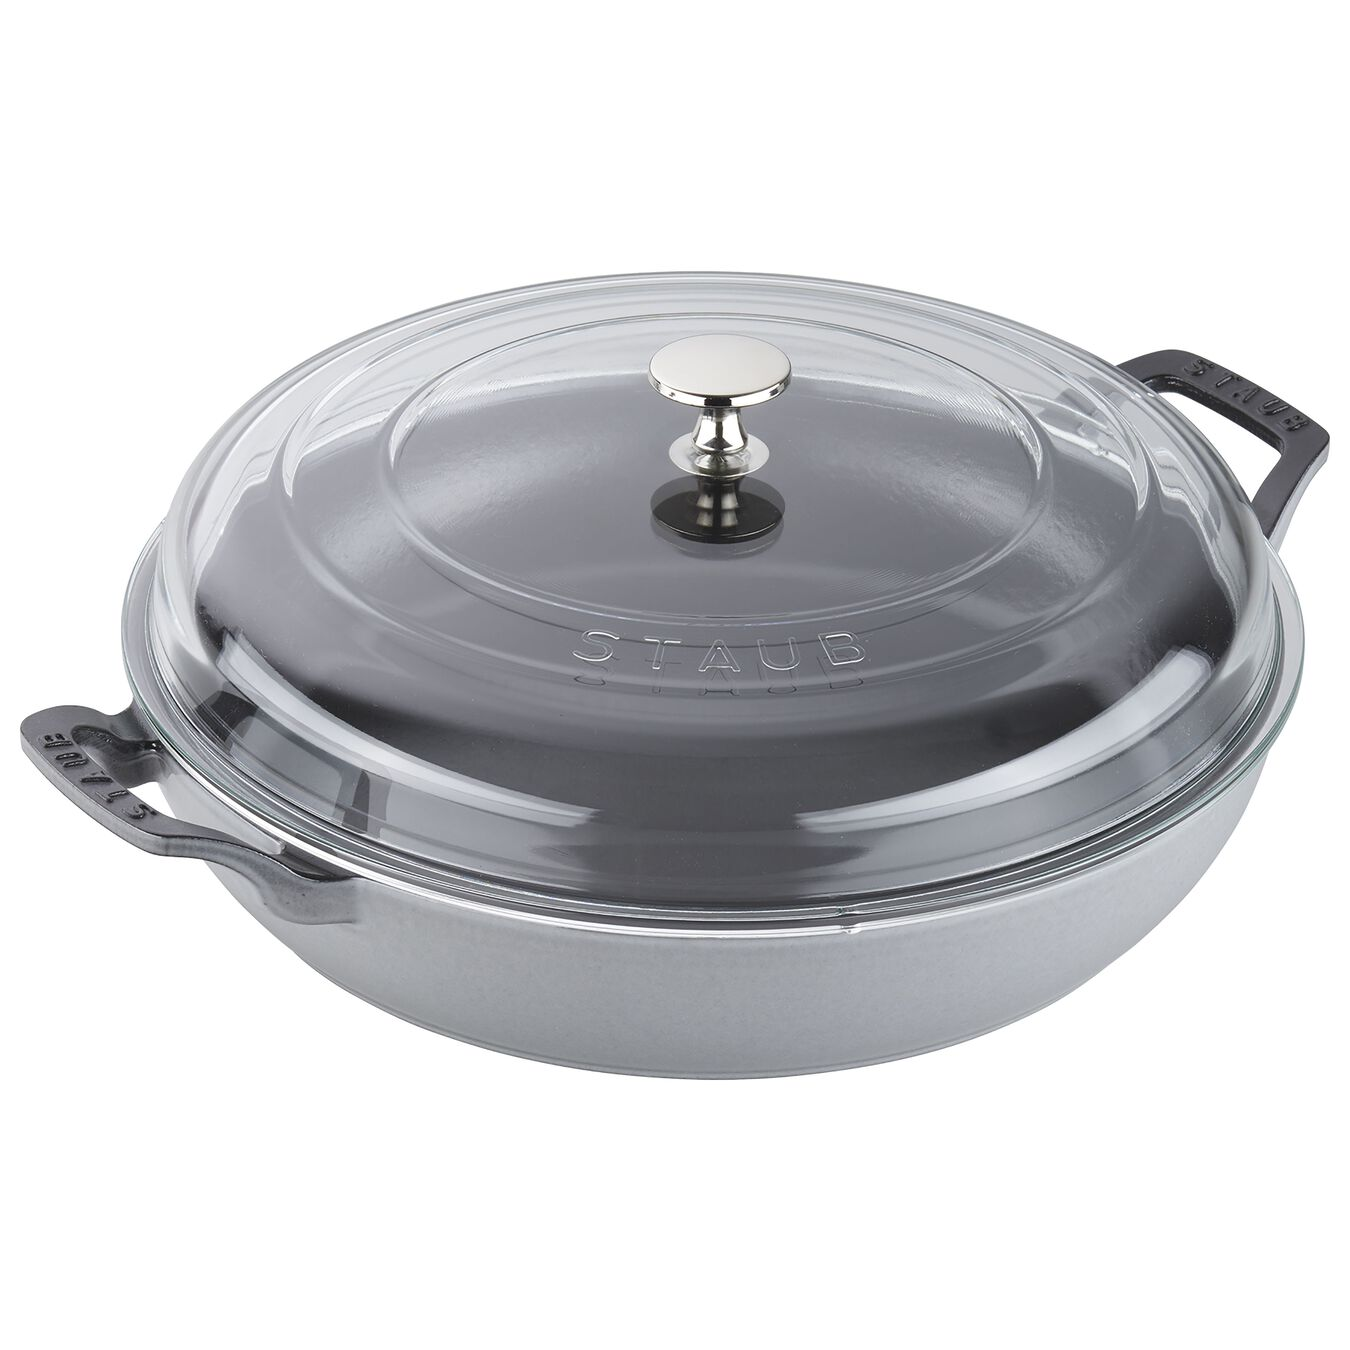 12-inch, Saute pan with glass lid, graphite grey,,large 1